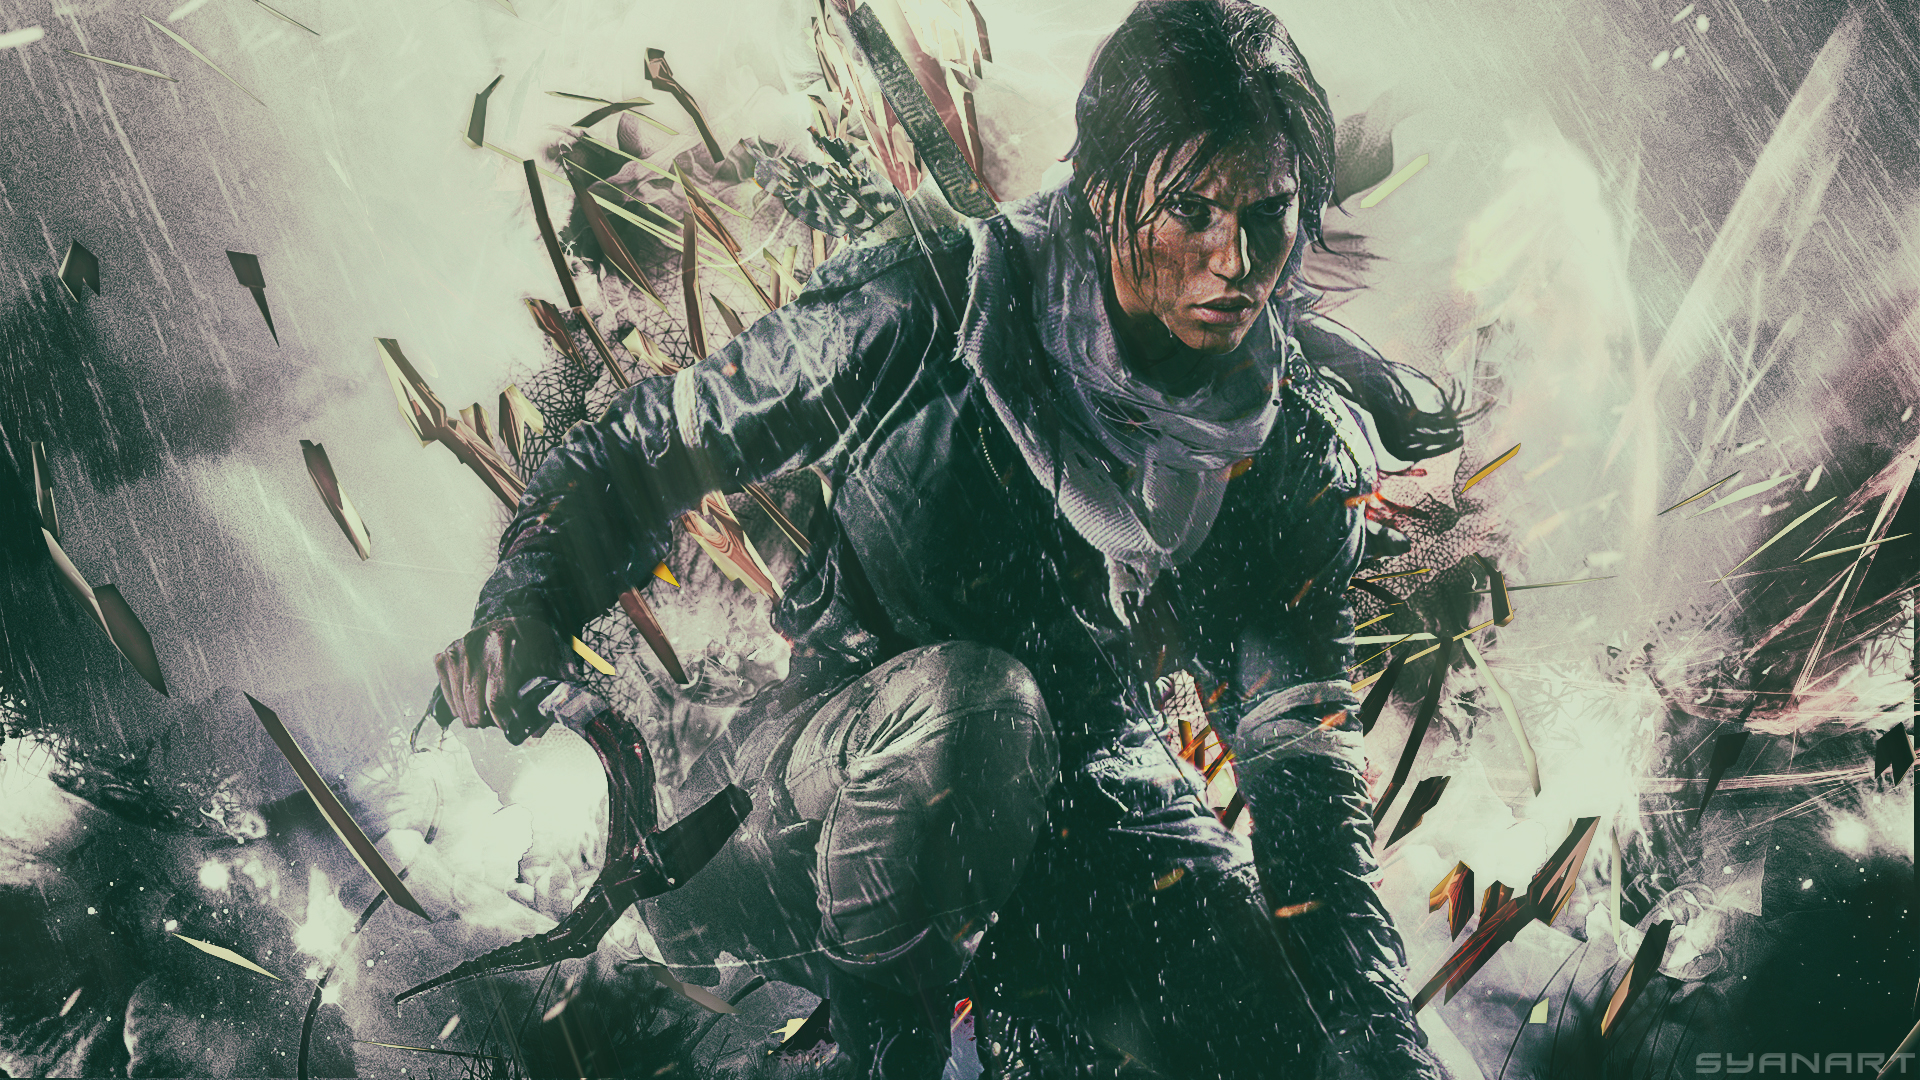 Hd Quality Rise Of The Tomb Raider Wallpaper Saffron Photography